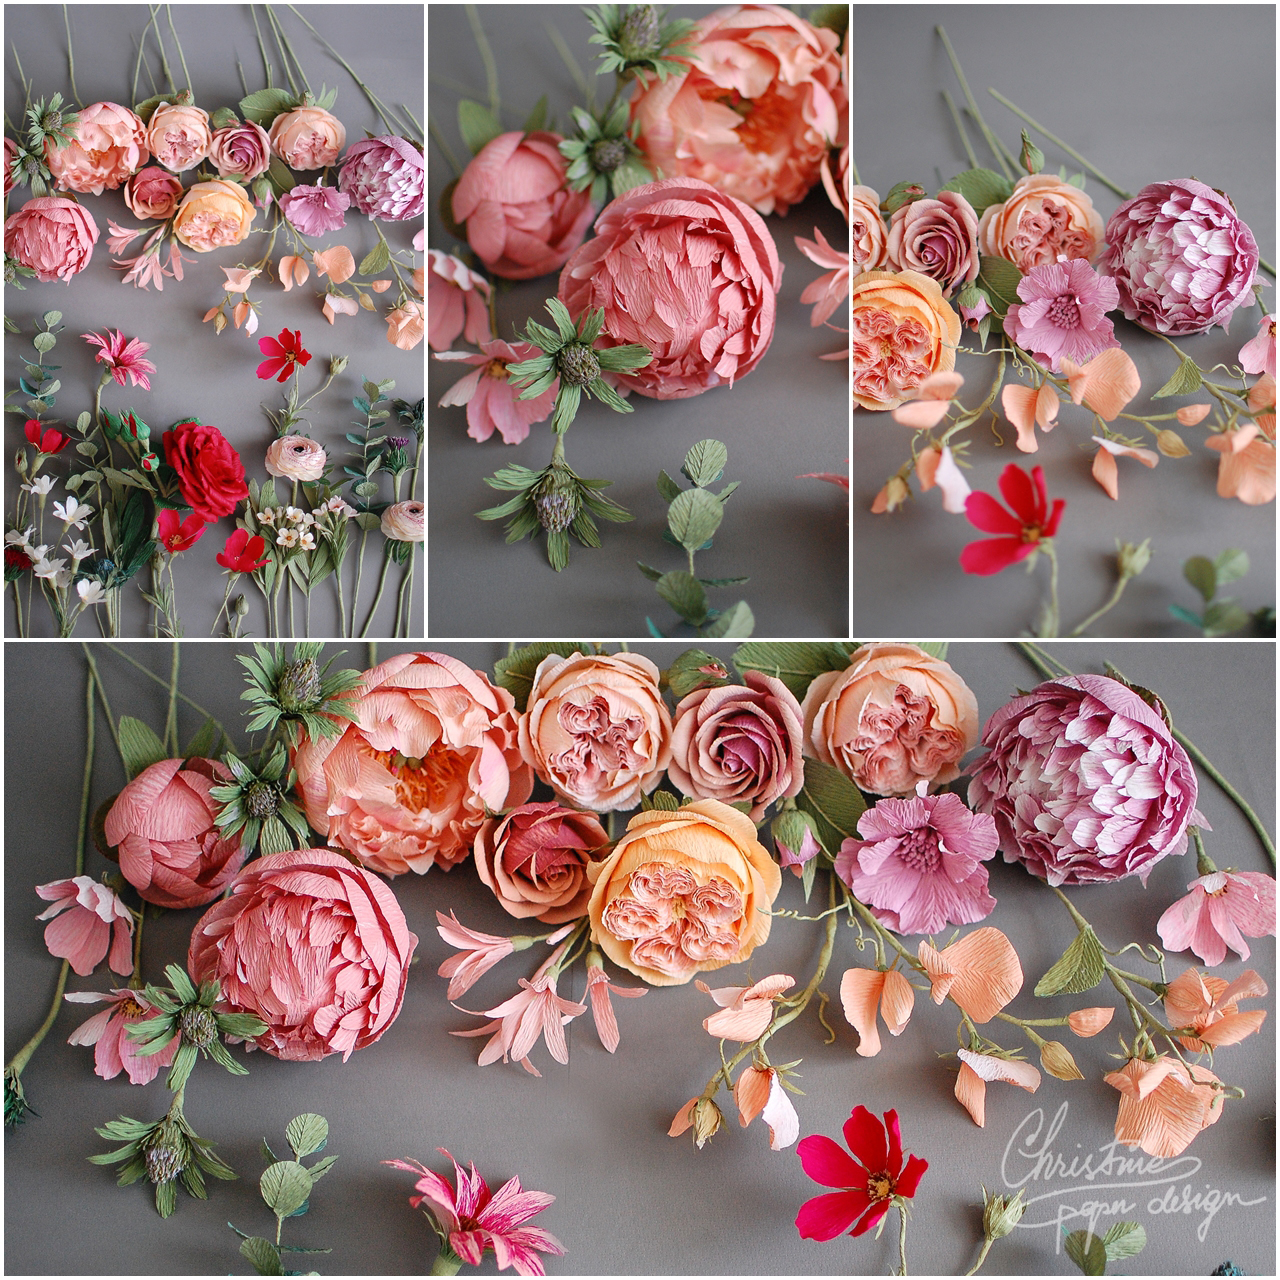 paper flowers - Christine paper design